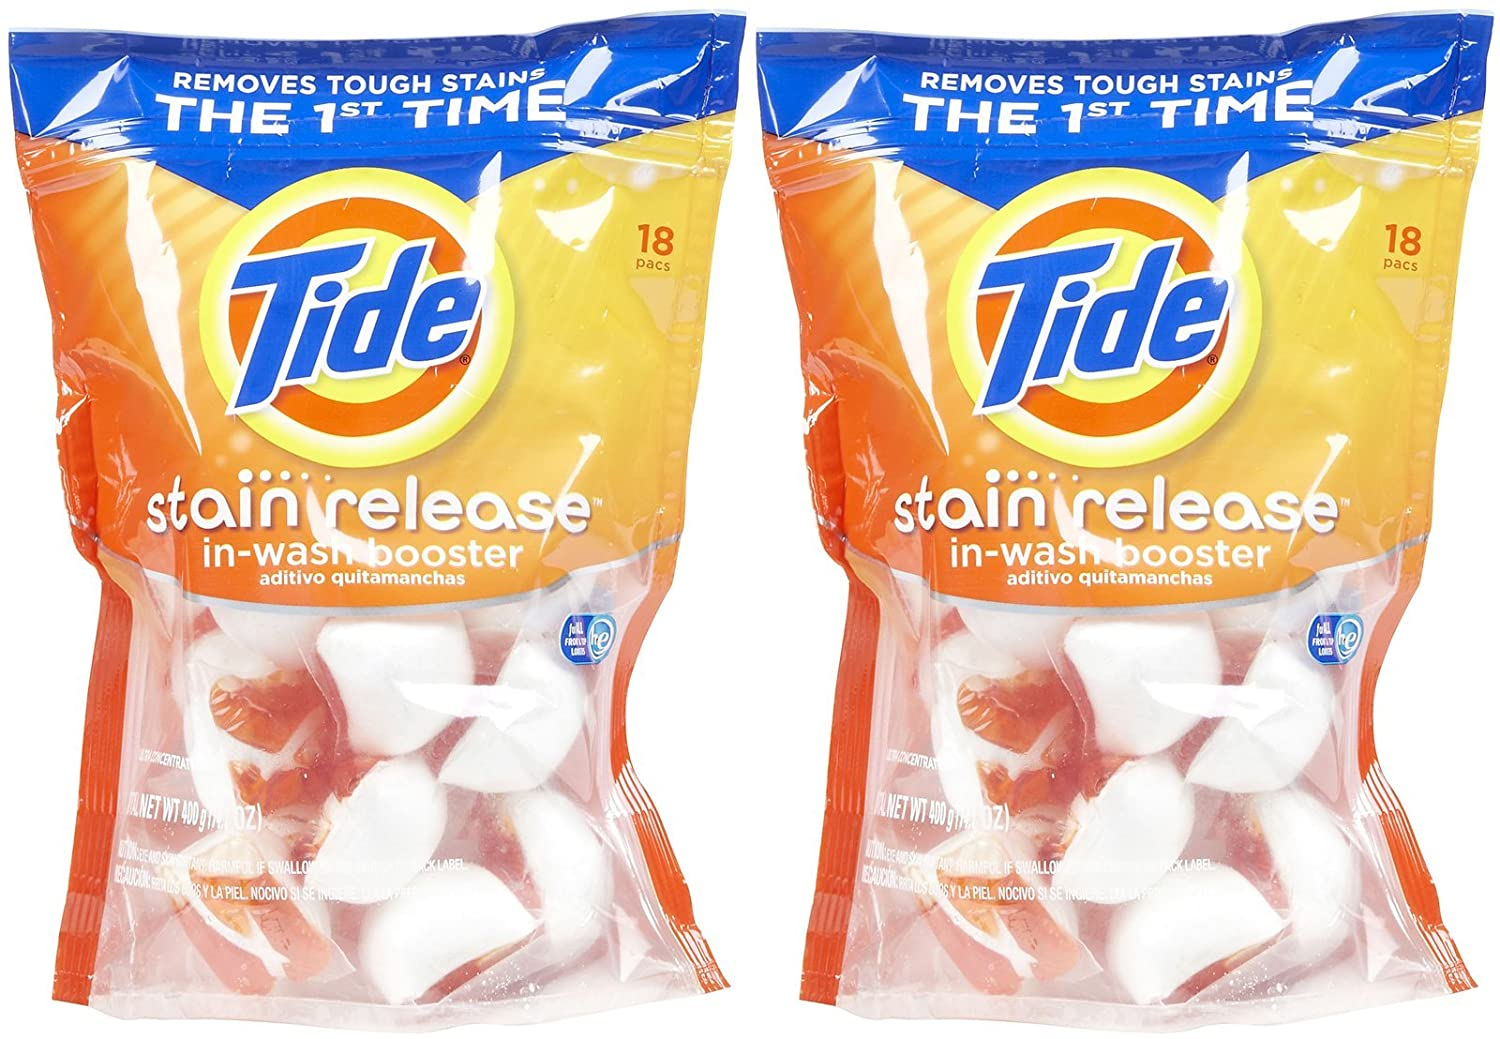 Amazon.com: Tide Stain Release In-Wash Booster - 2 pk: Health & Personal Care